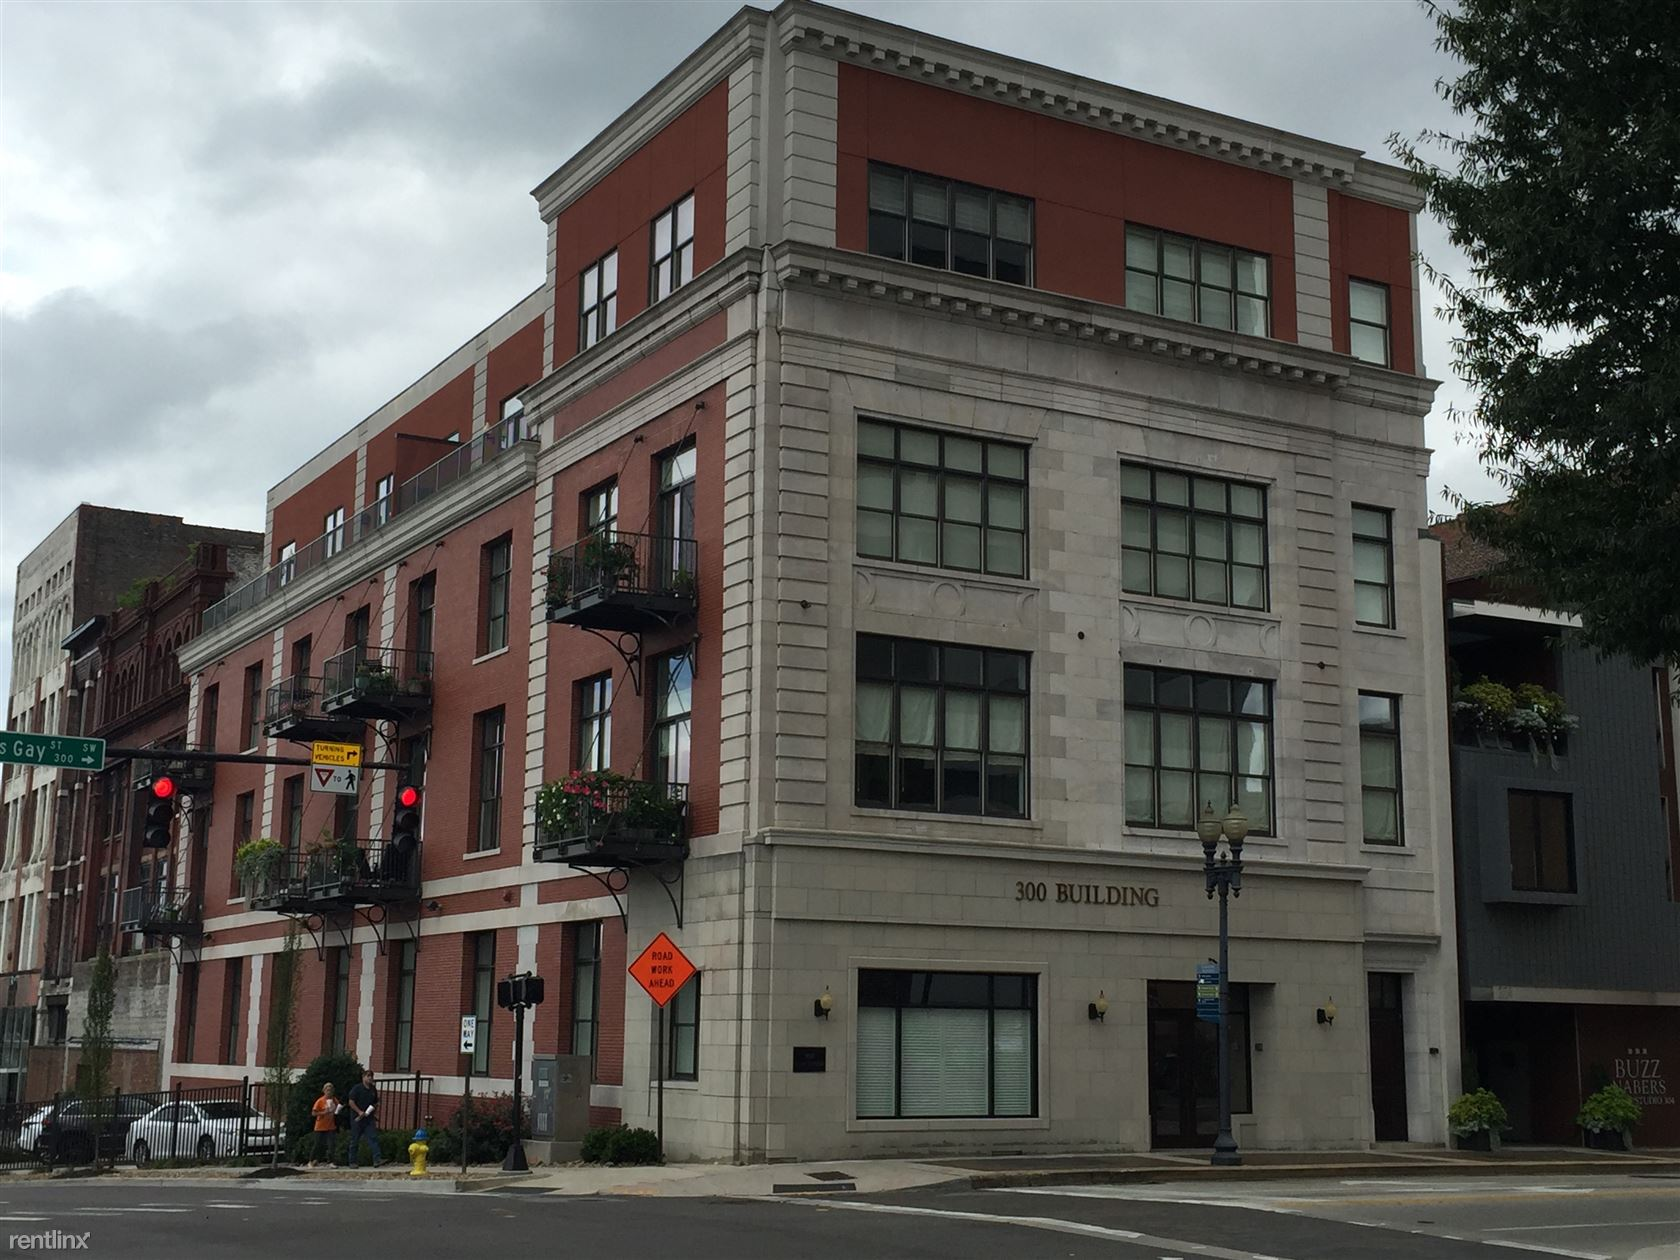 300 S. Gay St #302, Knoxville, TN - $2,600